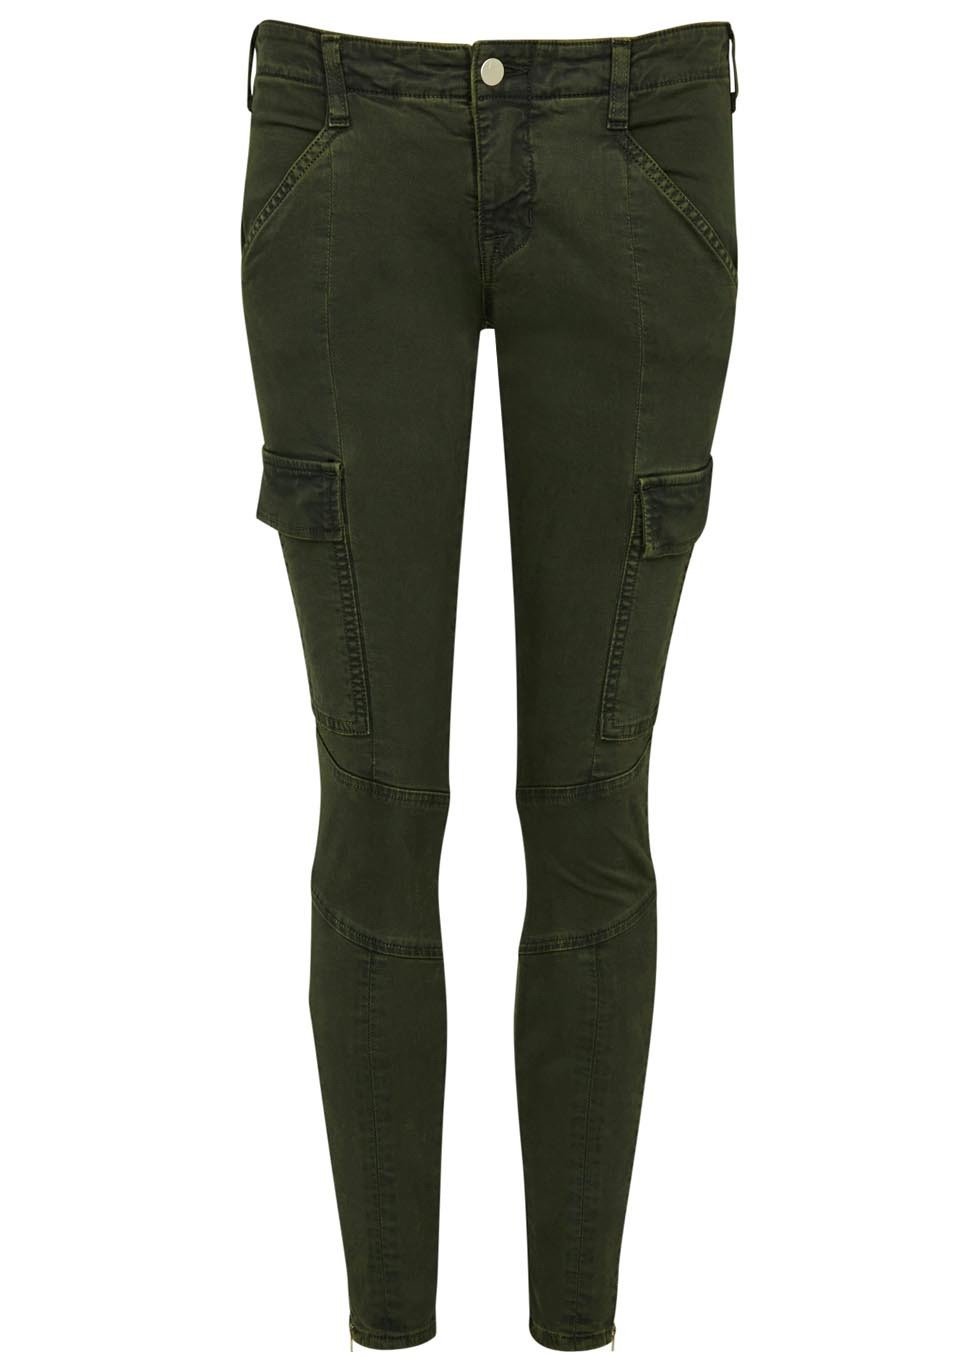 Houlihan Army Green Skinny Cargo Trousers - pattern: plain; waist: mid/regular rise; style: cargo; predominant colour: dark green; occasions: casual; length: ankle length; fibres: cotton - stretch; fit: skinny/tight leg; pattern type: fabric; texture group: woven light midweight; season: s/s 2016; wardrobe: highlight